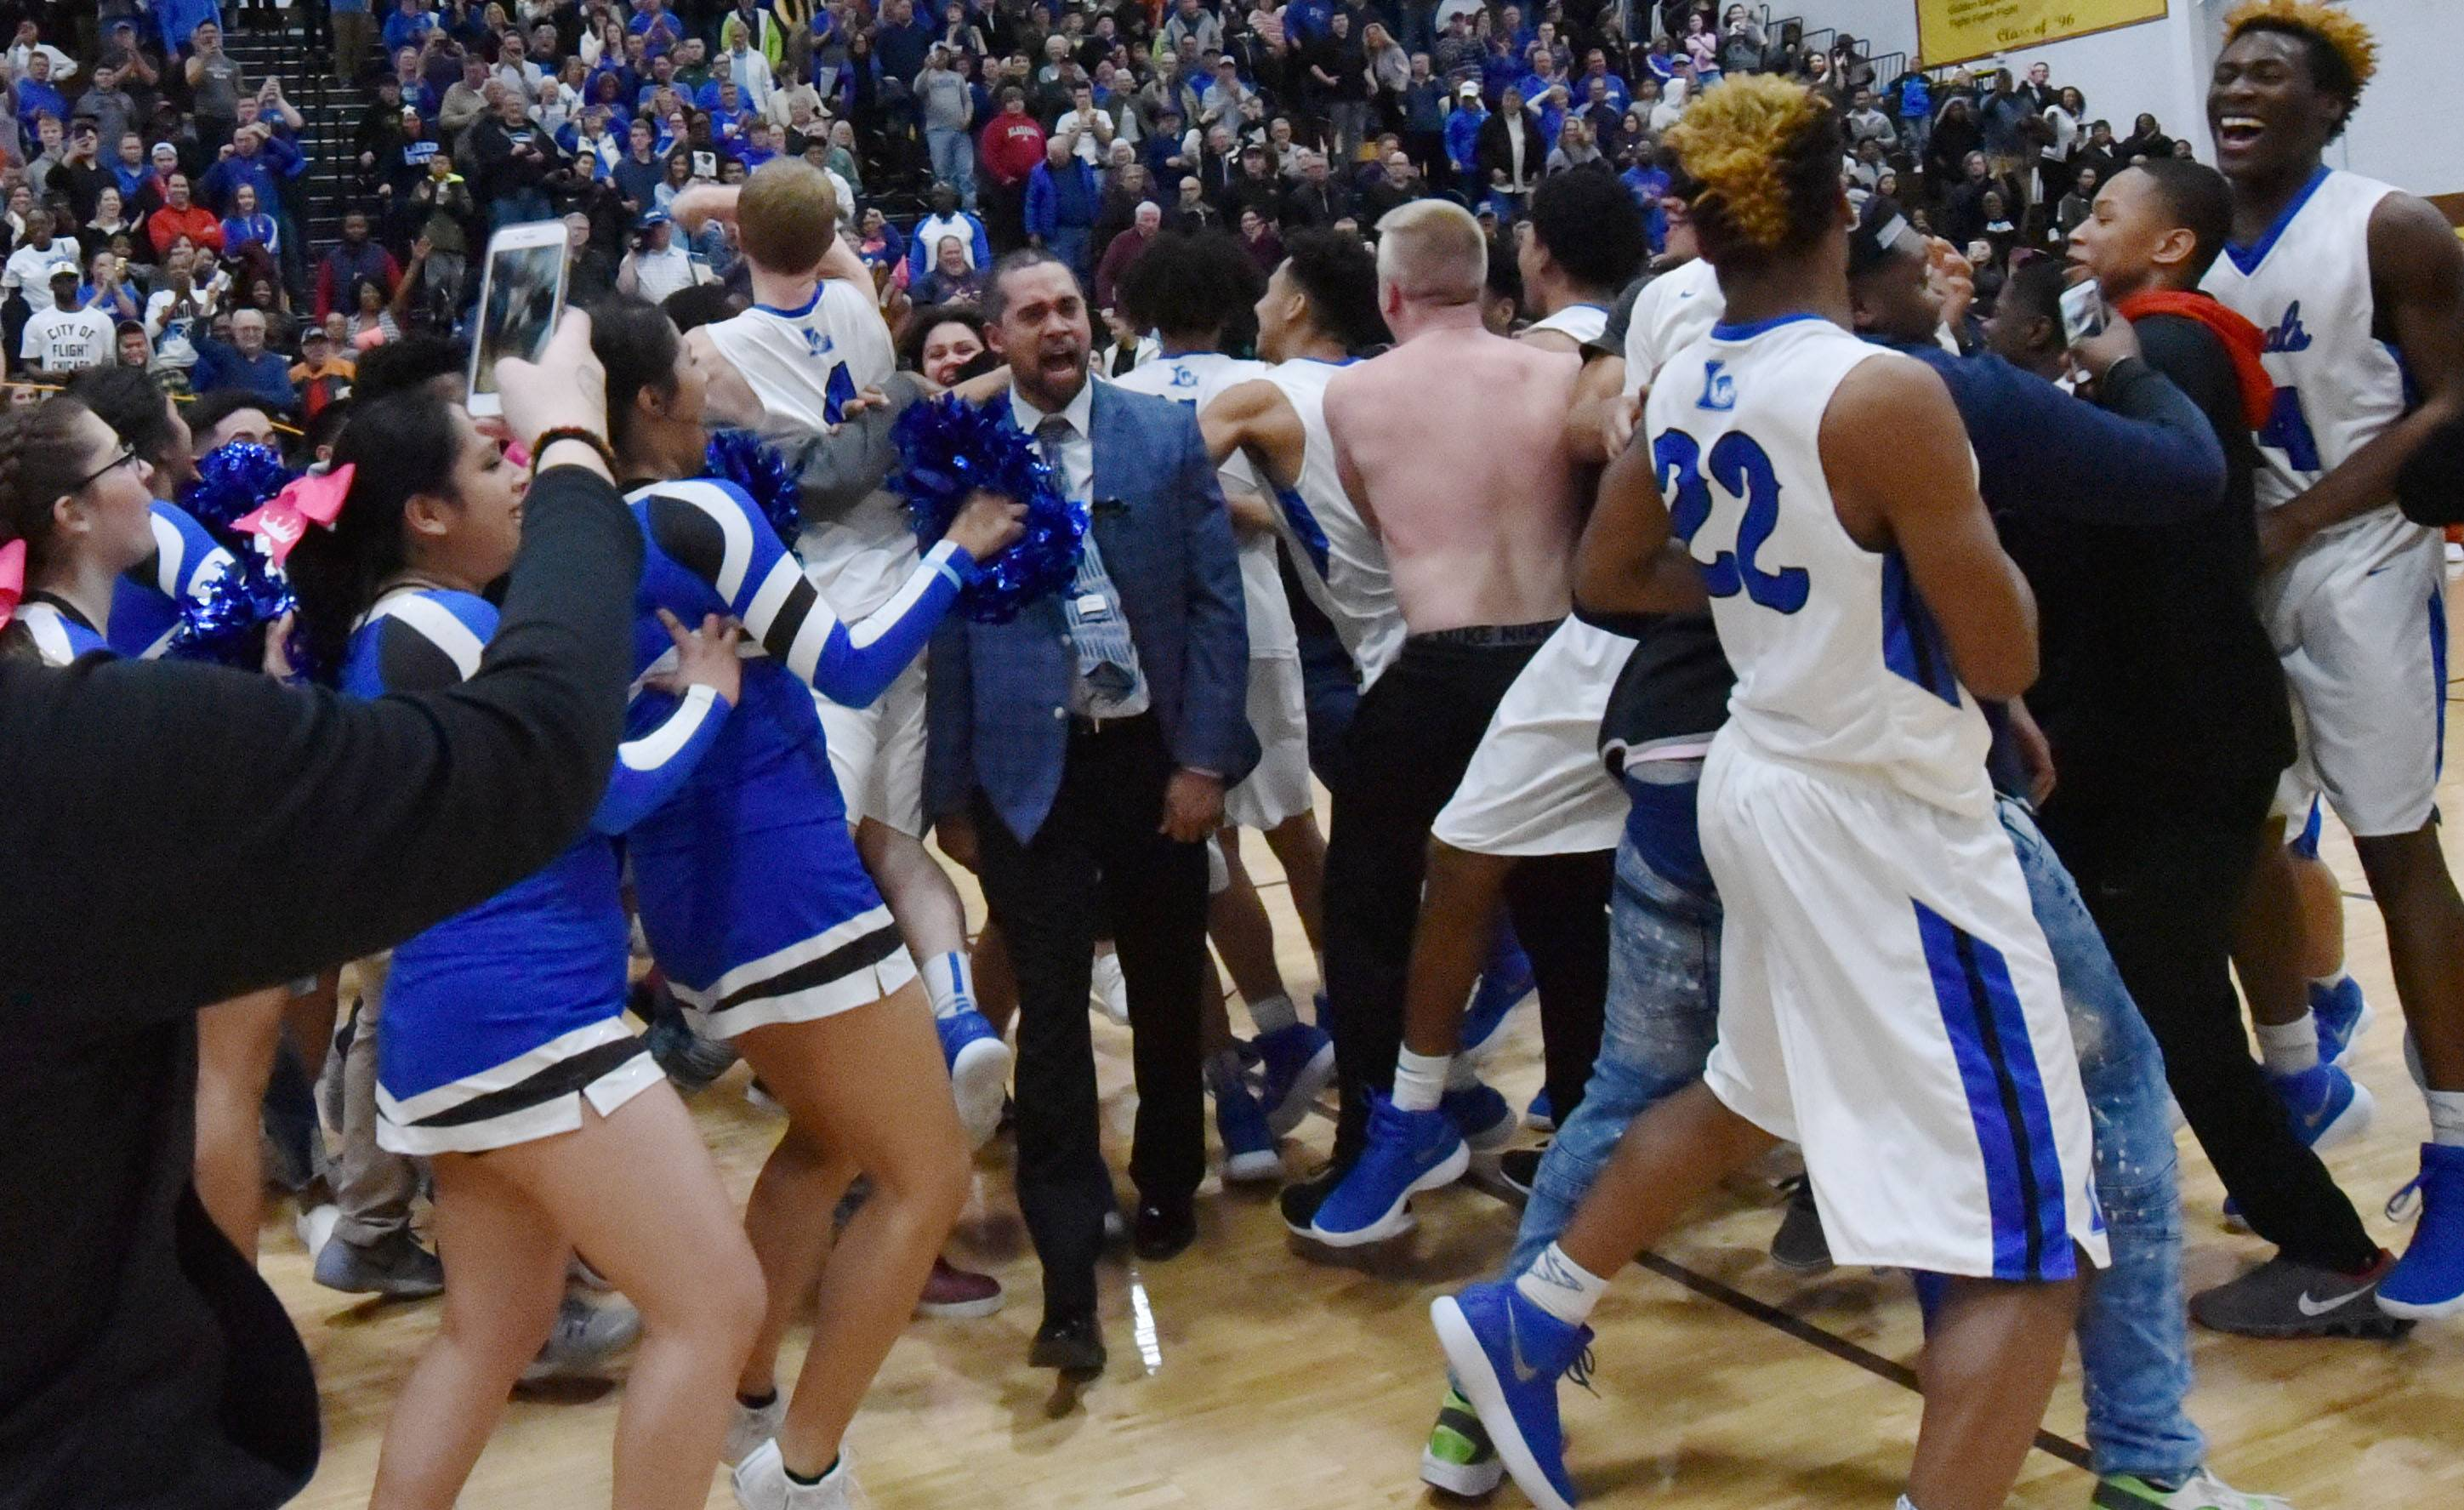 Larkin head basketball coach Deryn Carter celebrates with his team after defeating Rockford Jefferson in the Class 4A Jacobs sectional championship boys basketball game in Algonquin Friday.